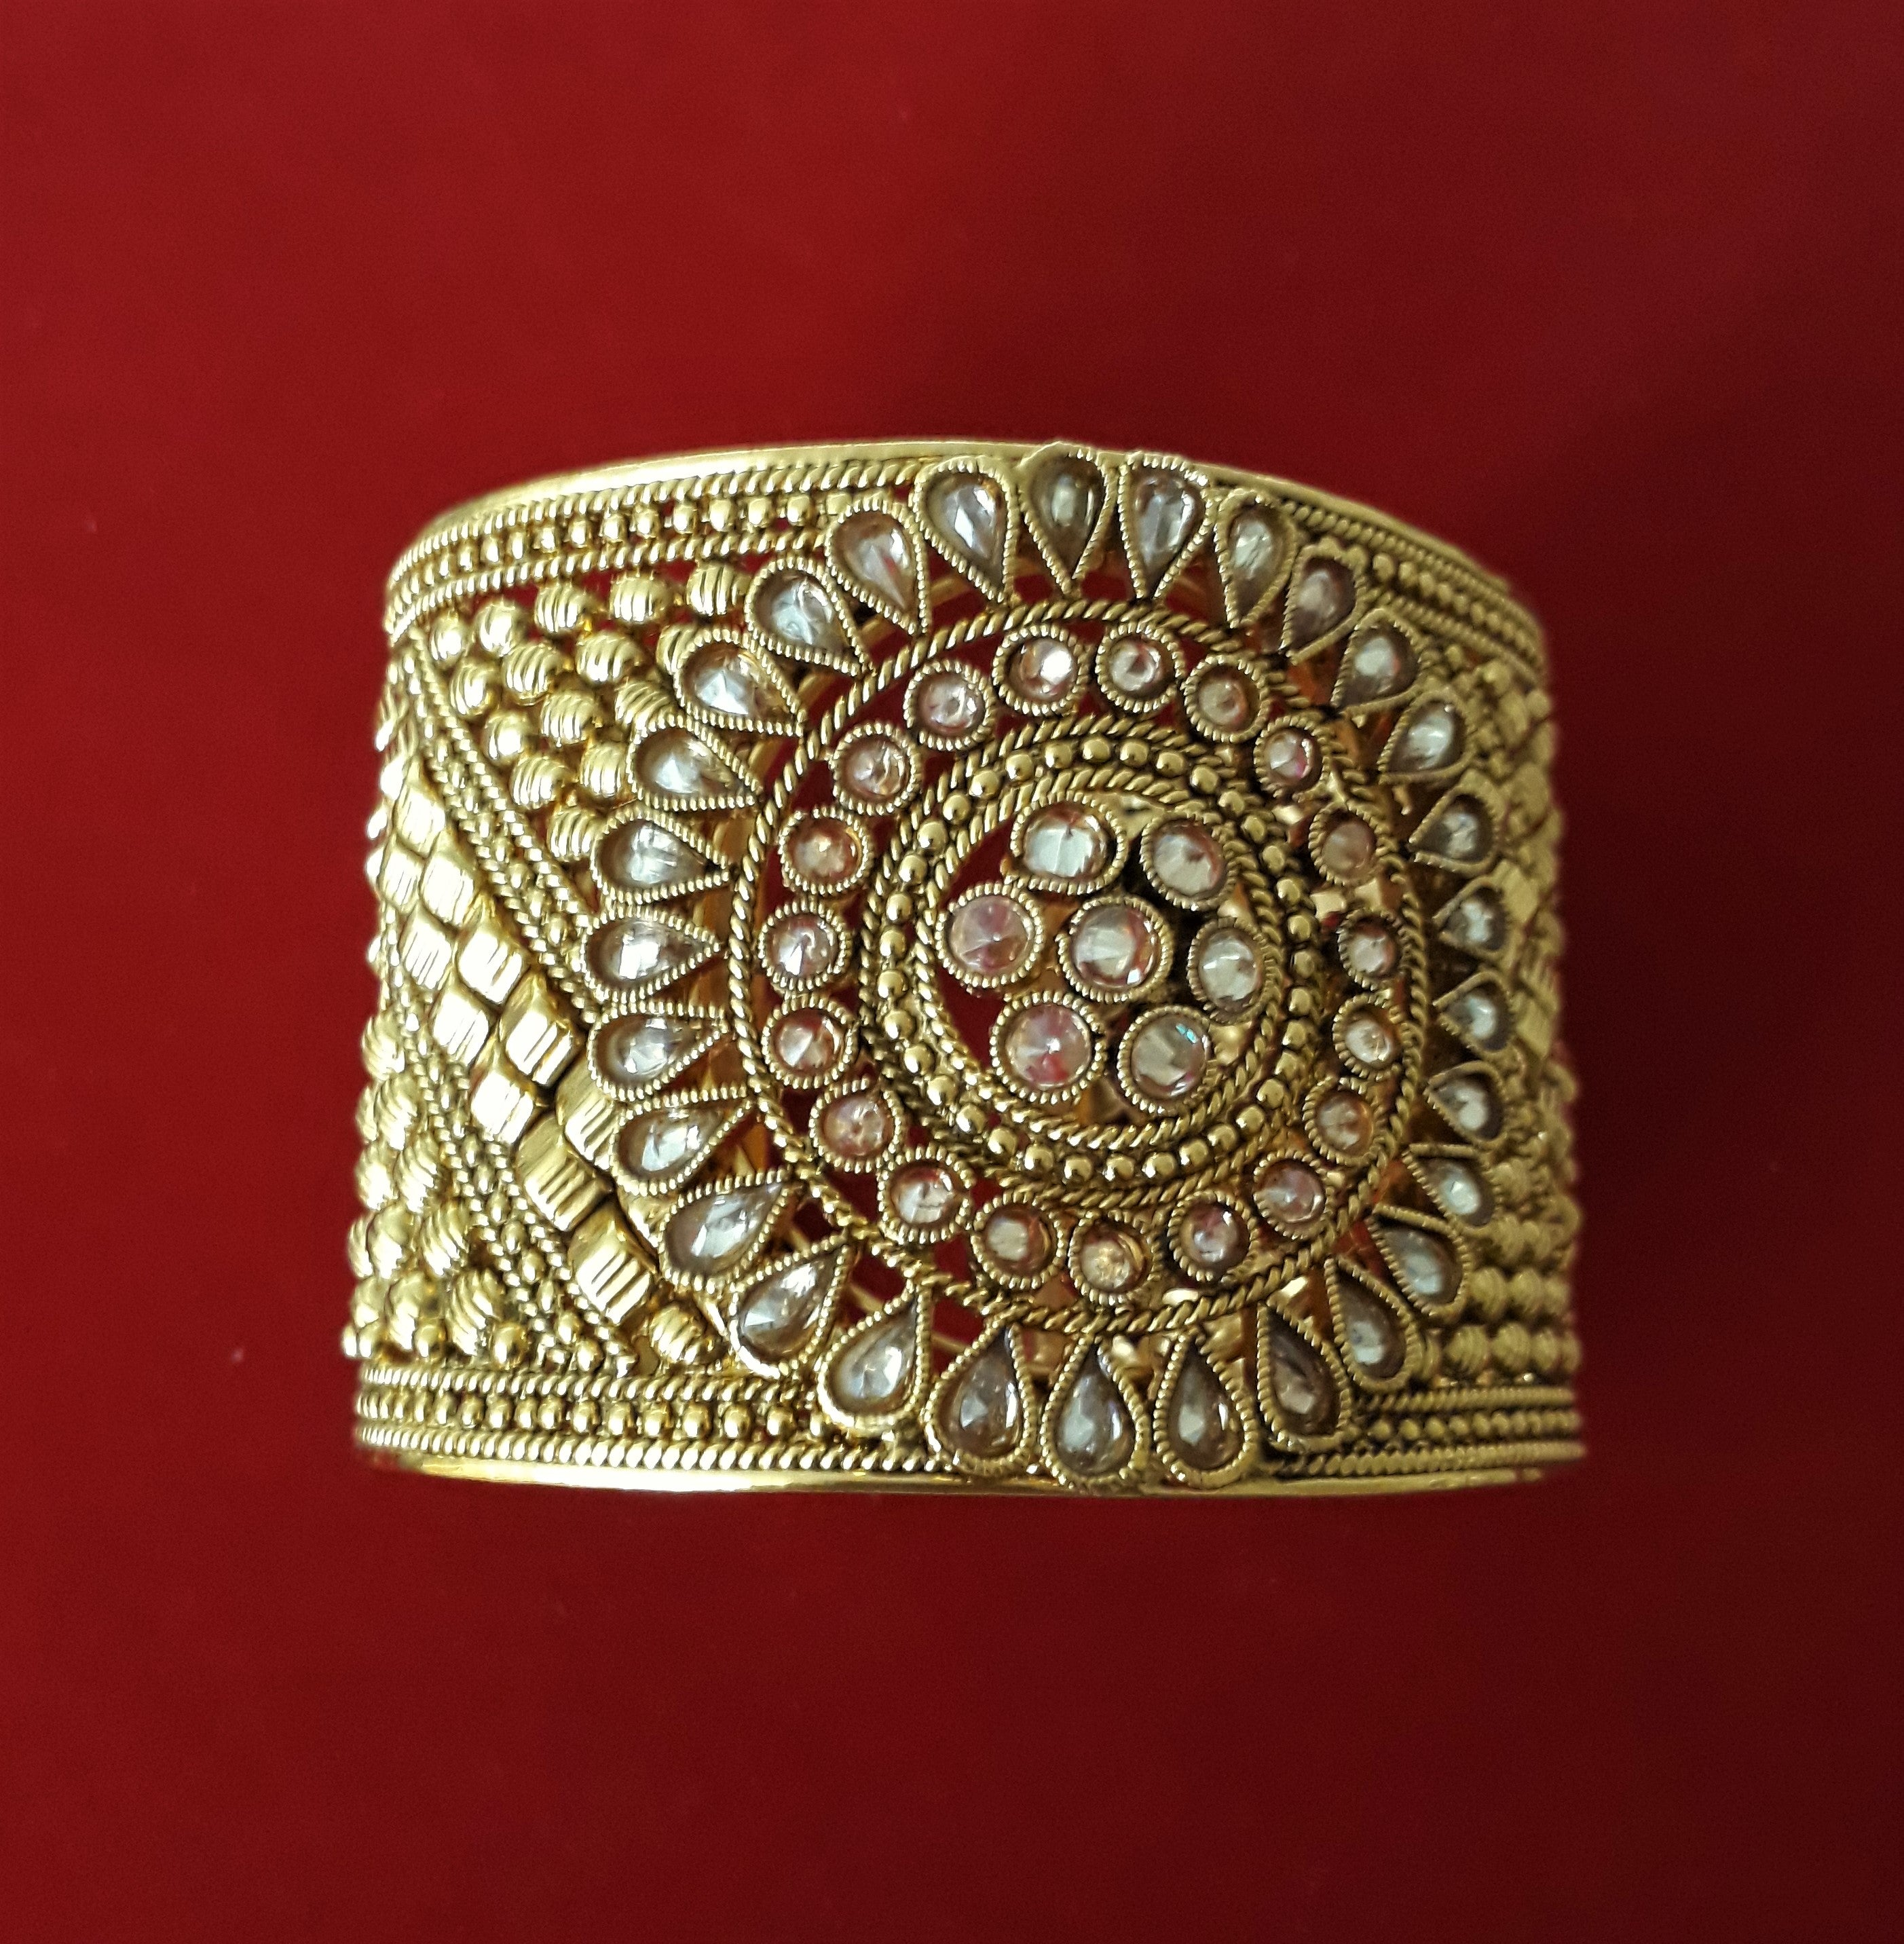 Gold Ornate Hand Cuff - Bridges to Borders